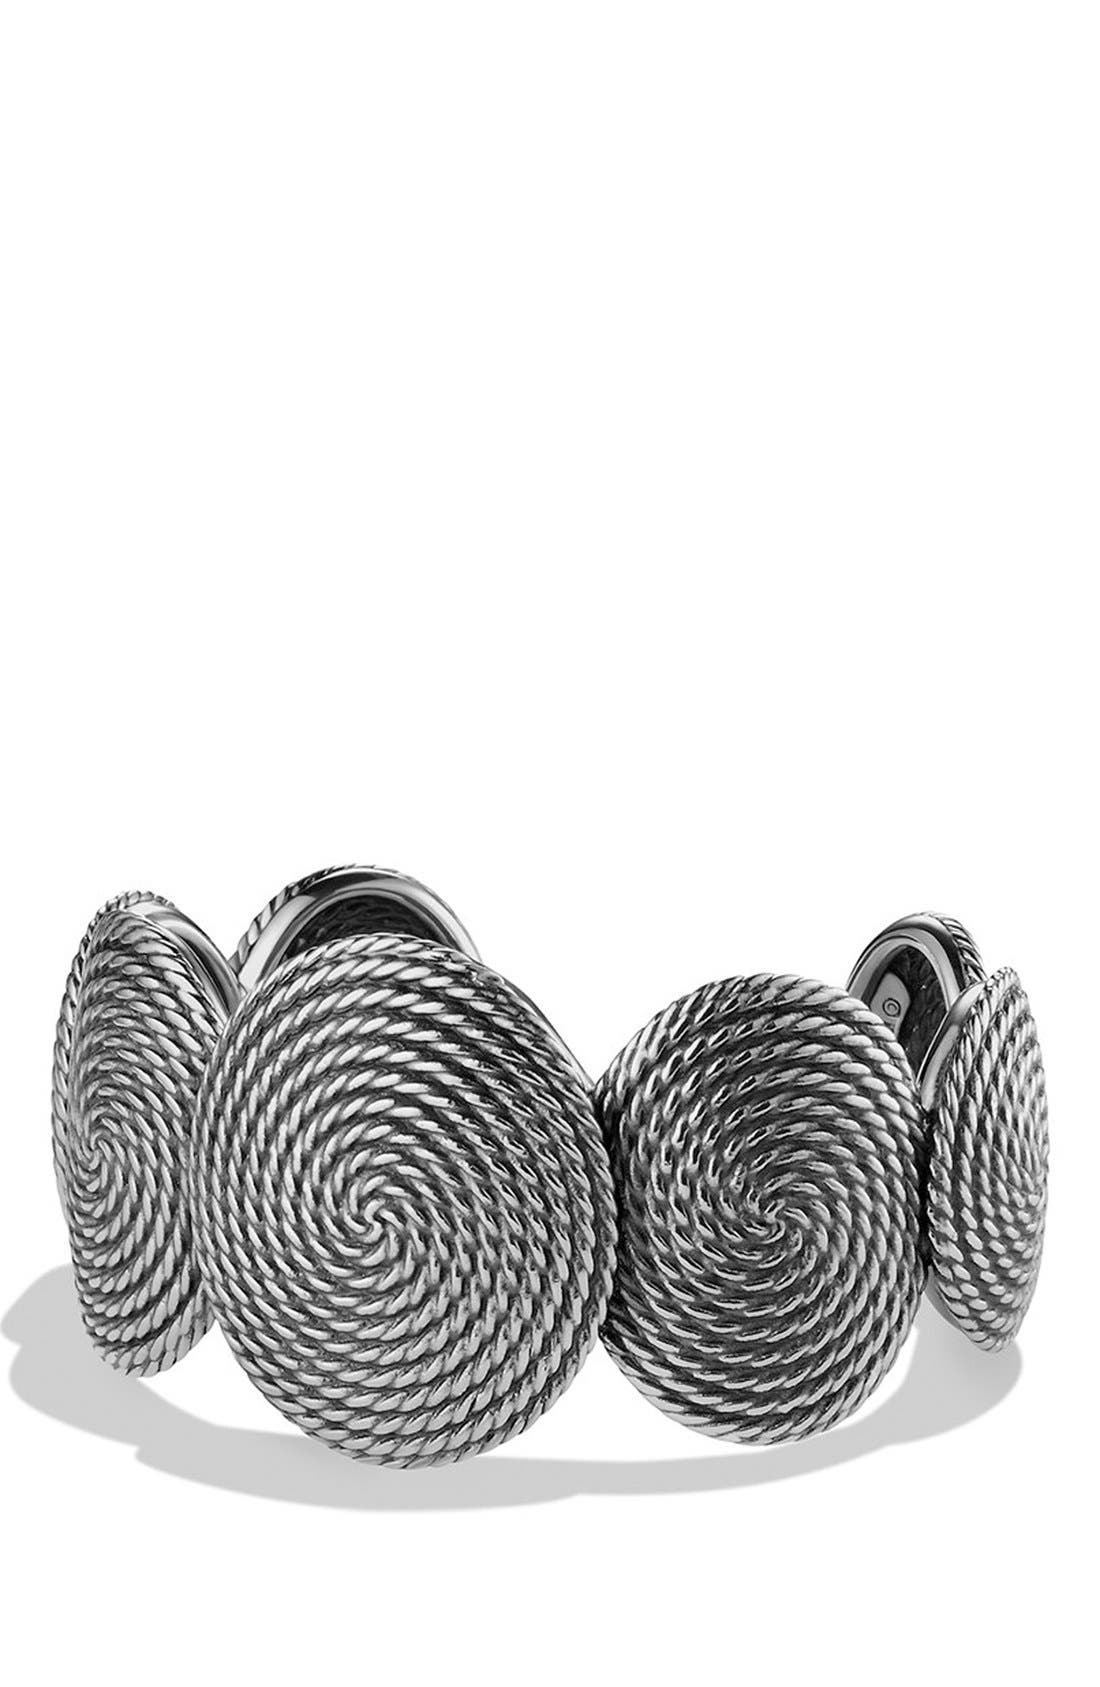 Alternate Image 1 Selected - David Yurman 'Waverly' Cable Coil Bracelet